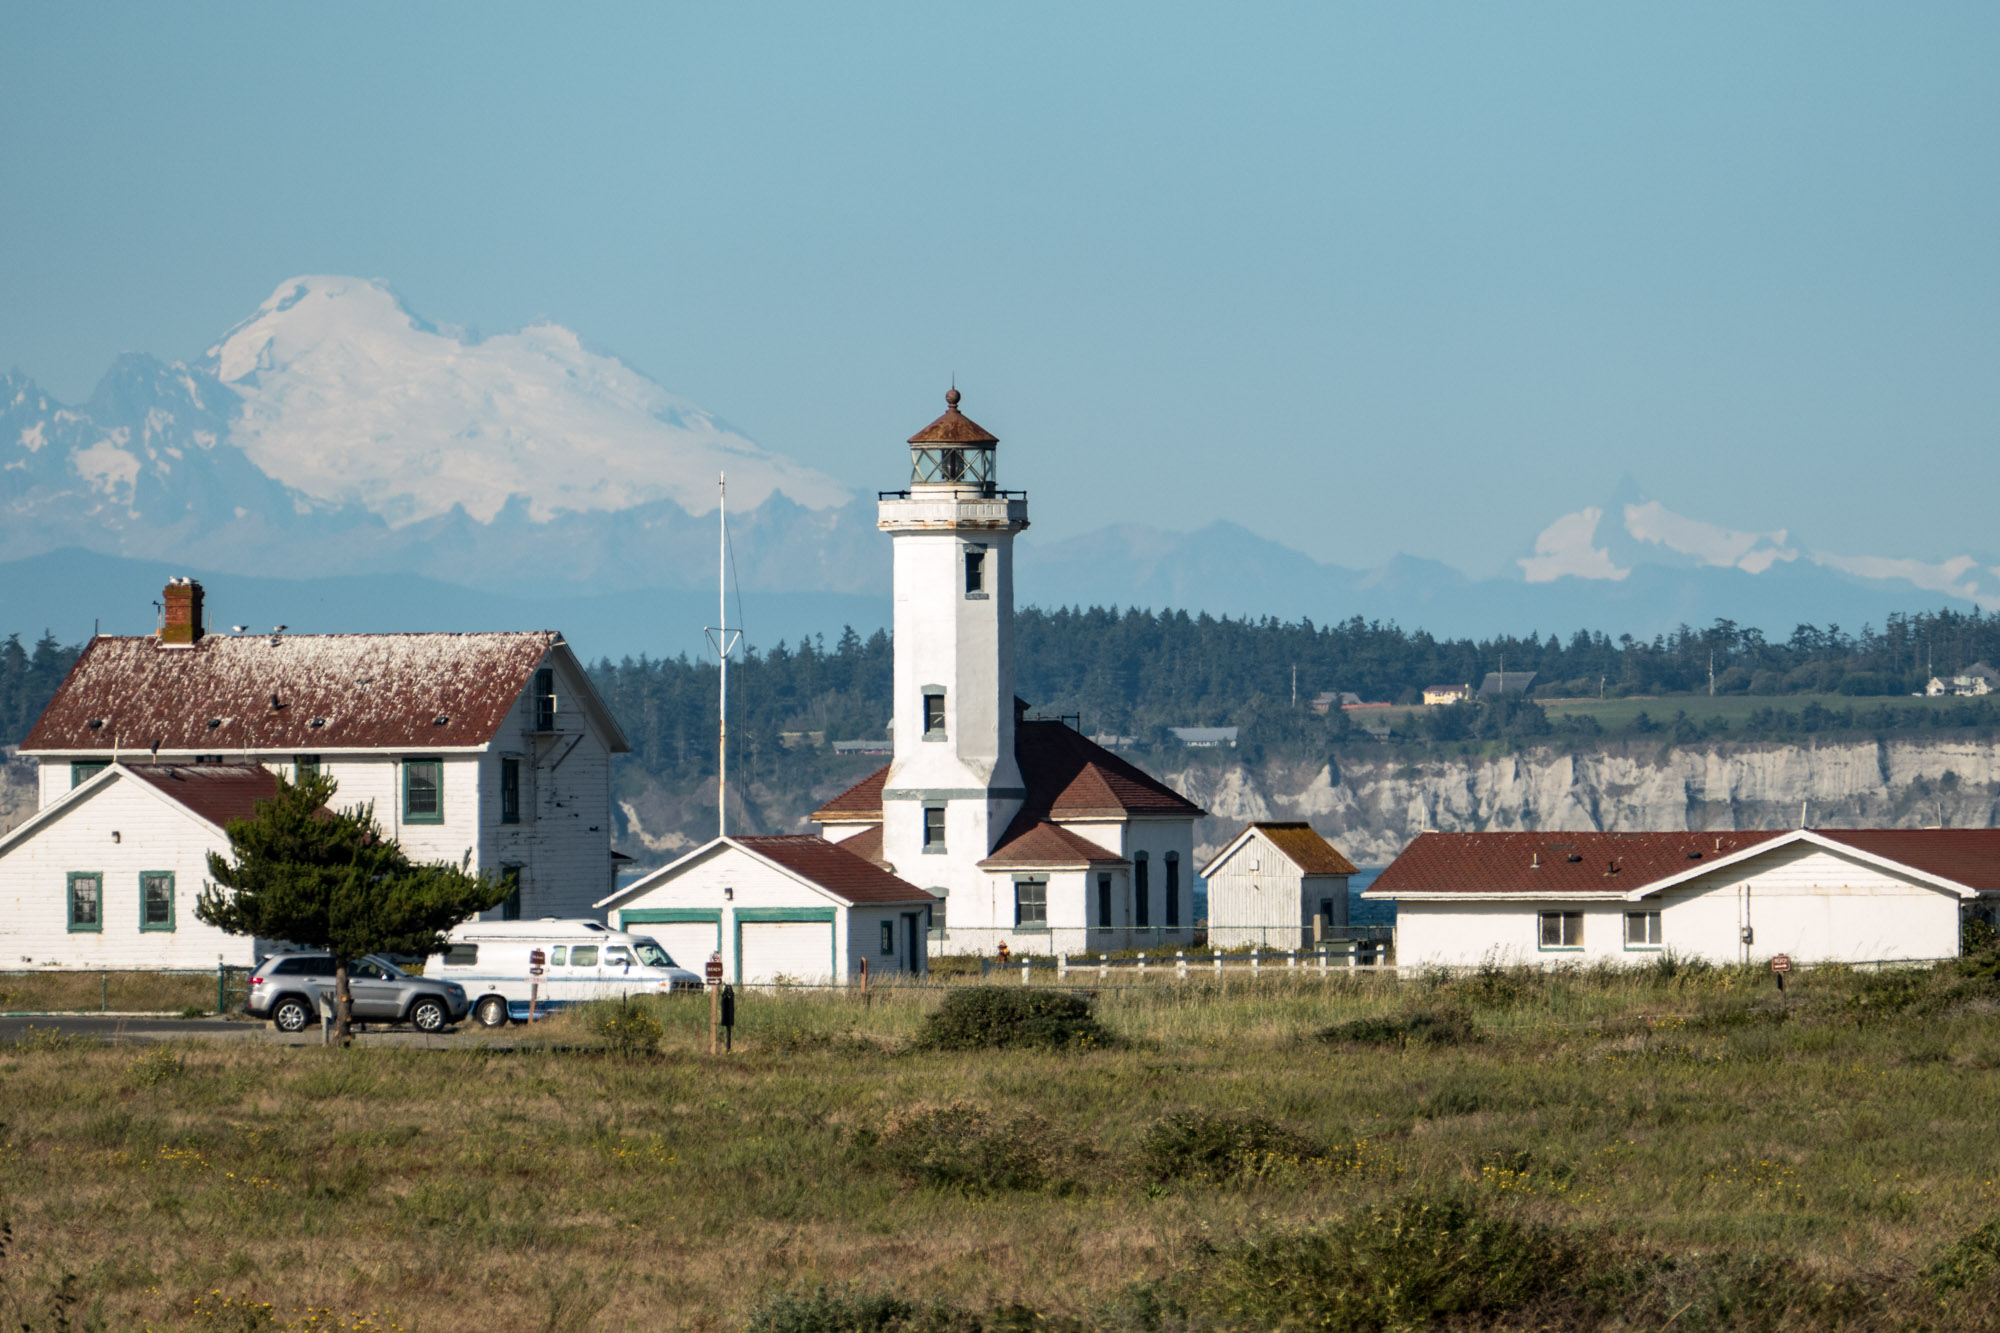 Point Wilson lighthouse with Mt. Baker in the background. With a telephoto lens one can make the background objects appear much larger.